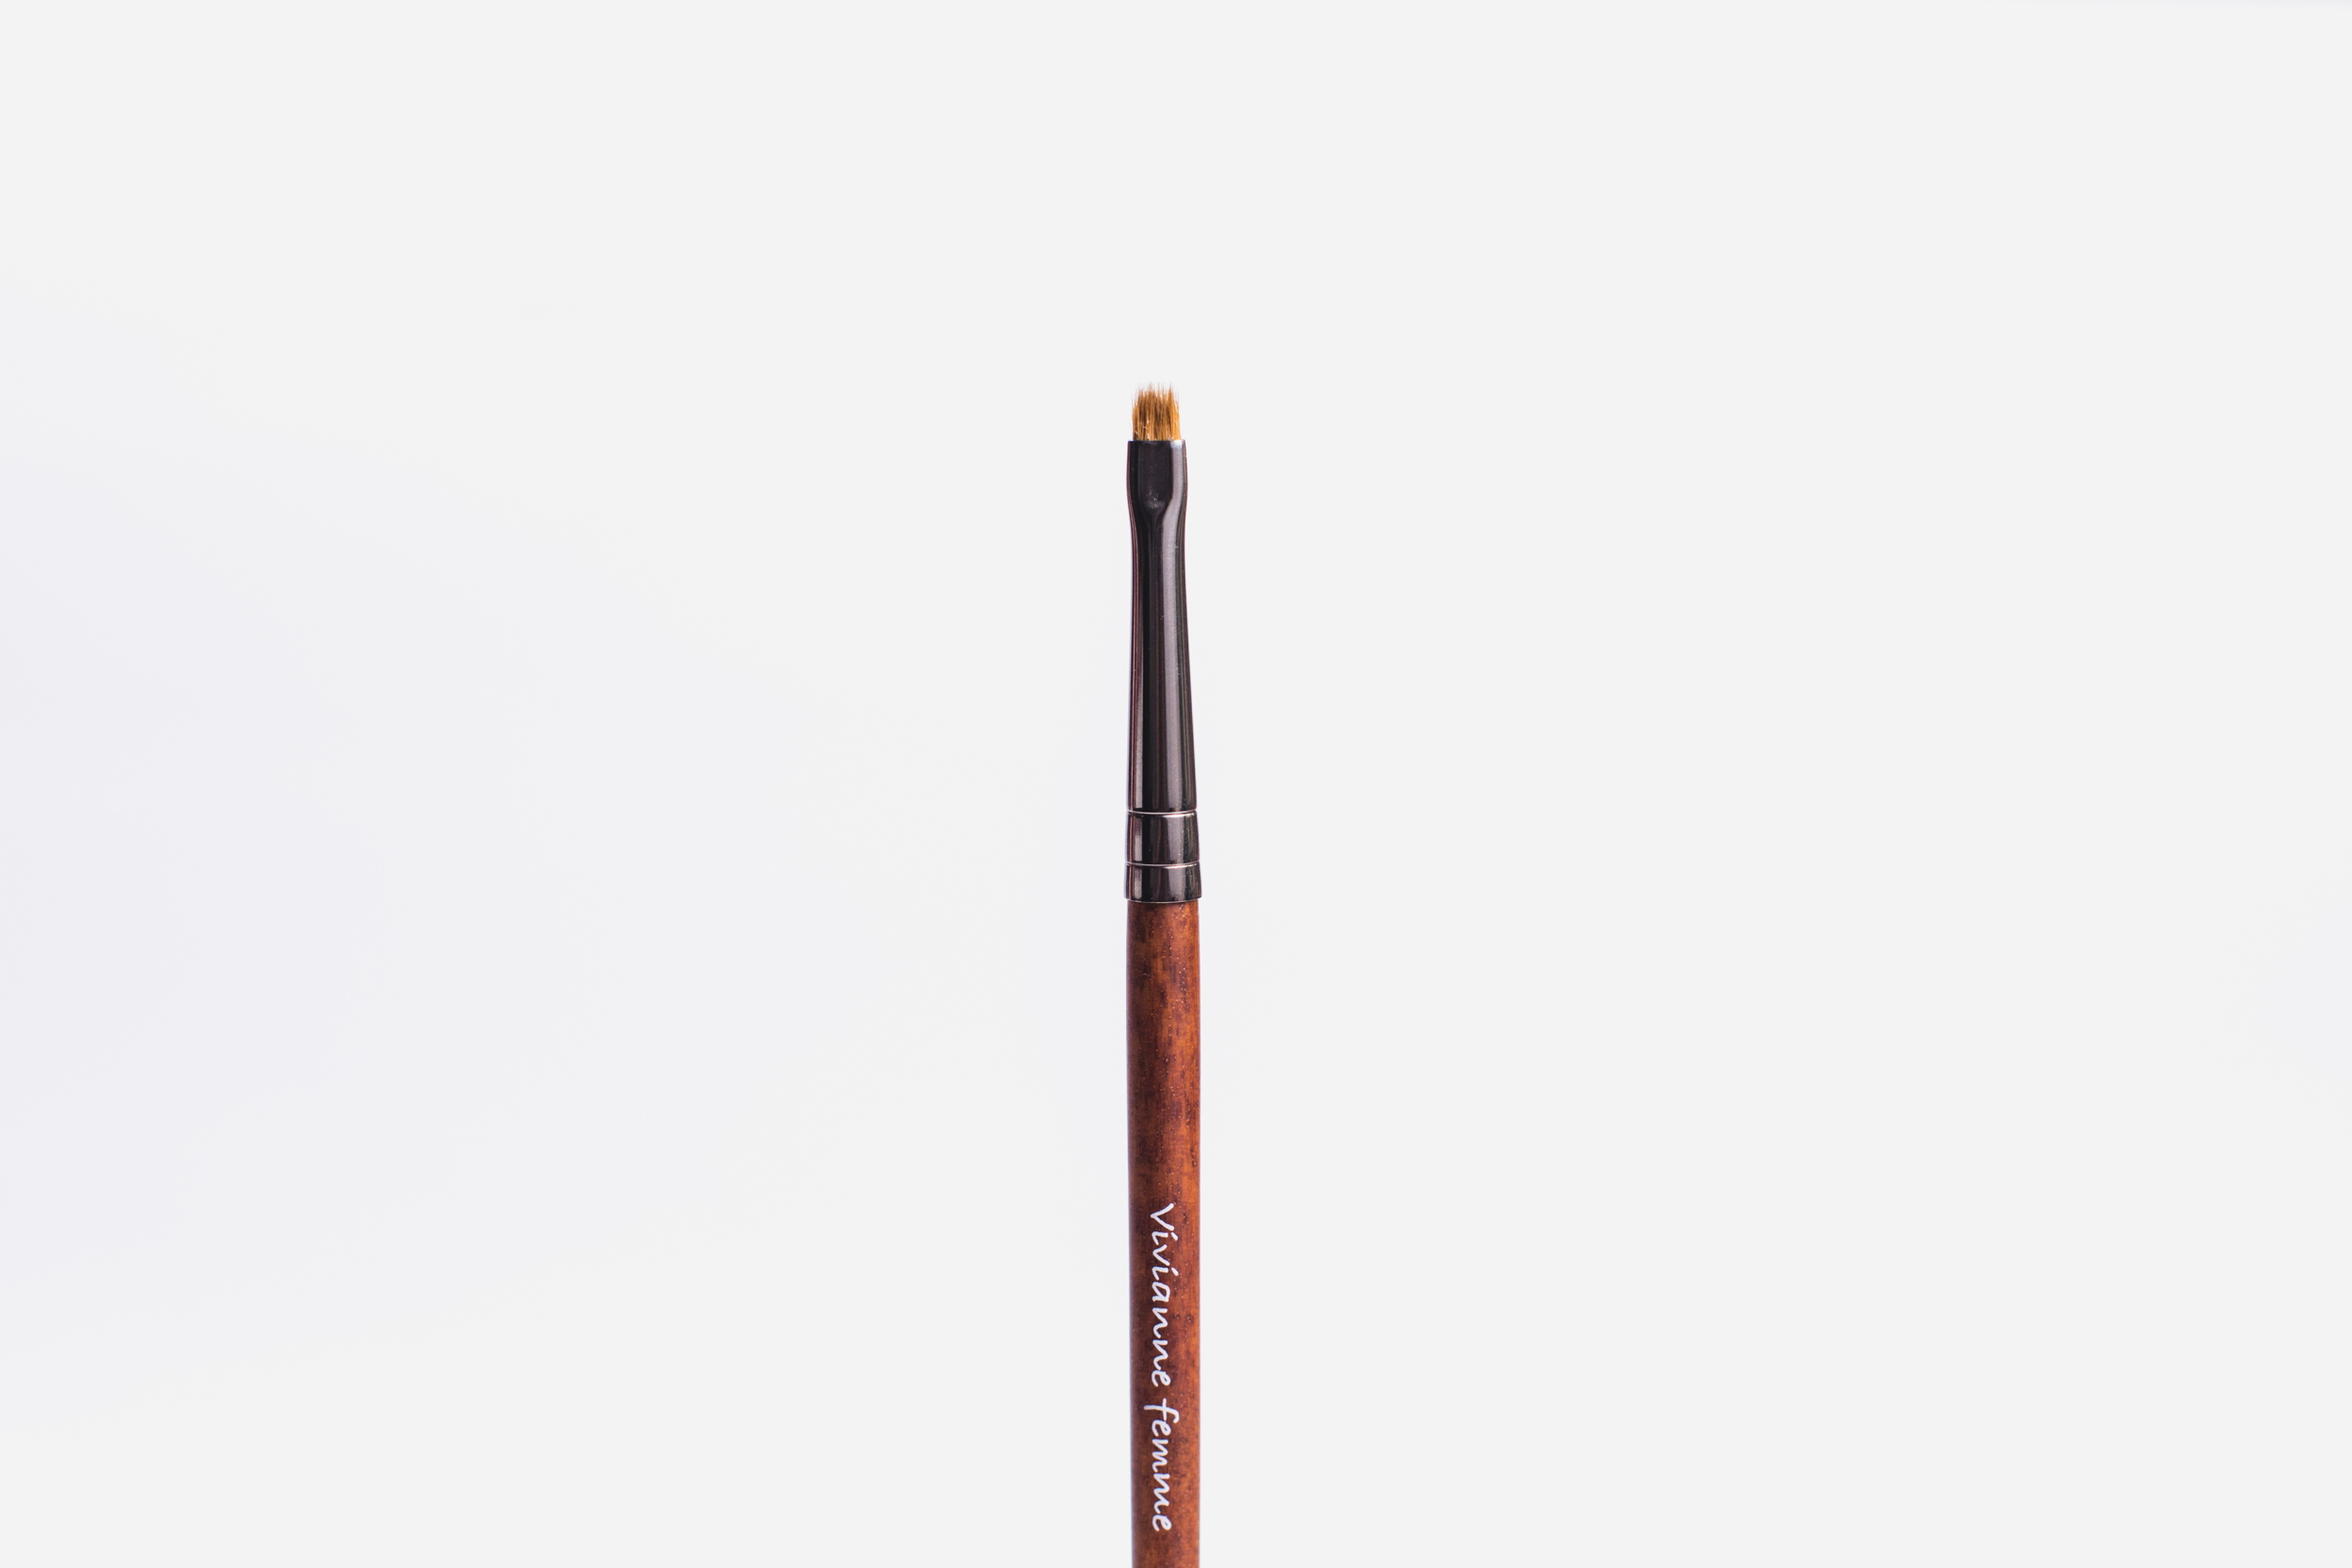 Vivianne Femme Mini Precision Eyeliner Brush (P295)